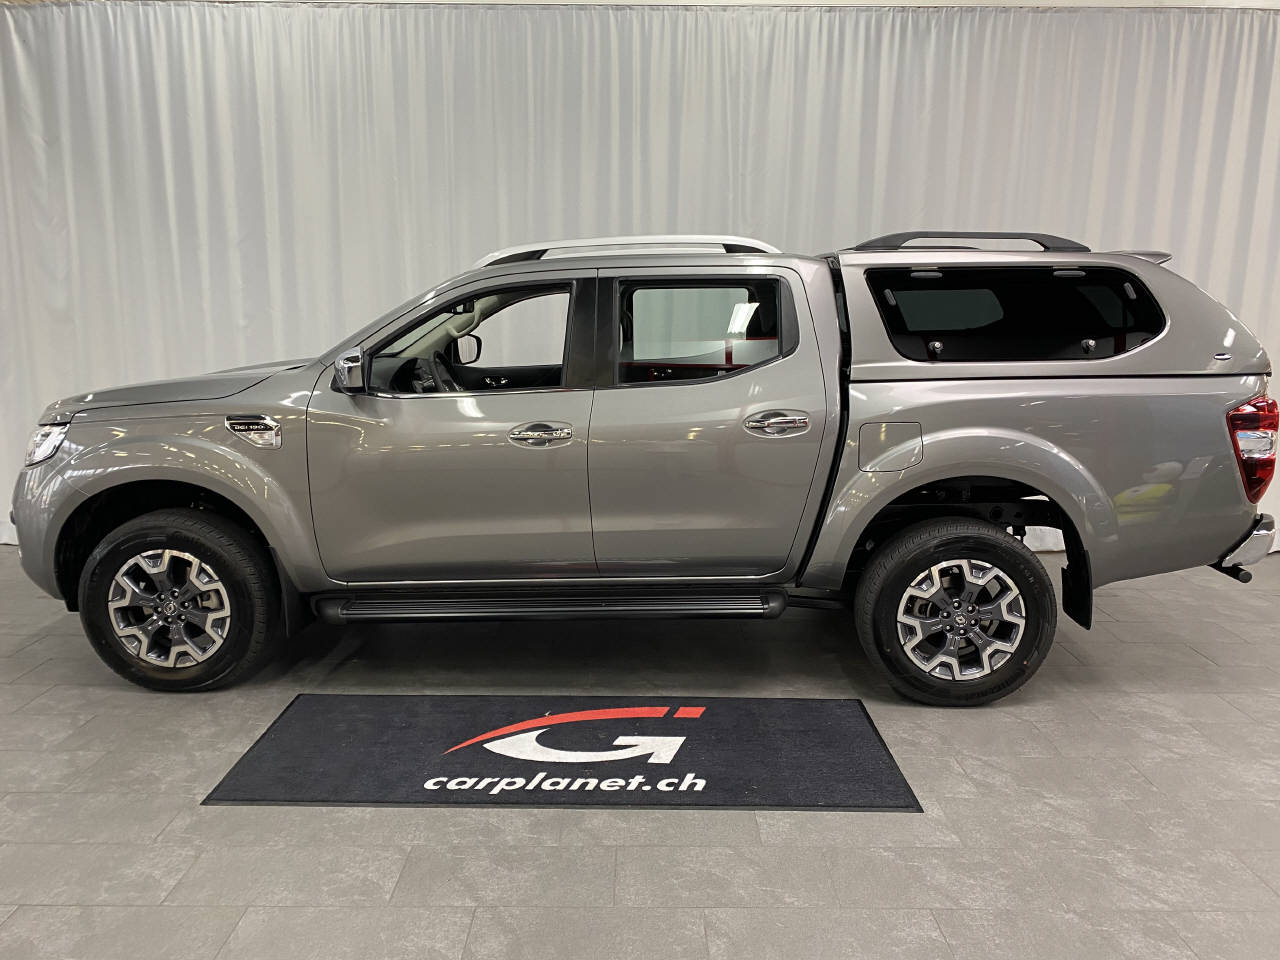 pickup Renault Alaskan Pick-up 2.3 dCi 190 TT Zen 4x4